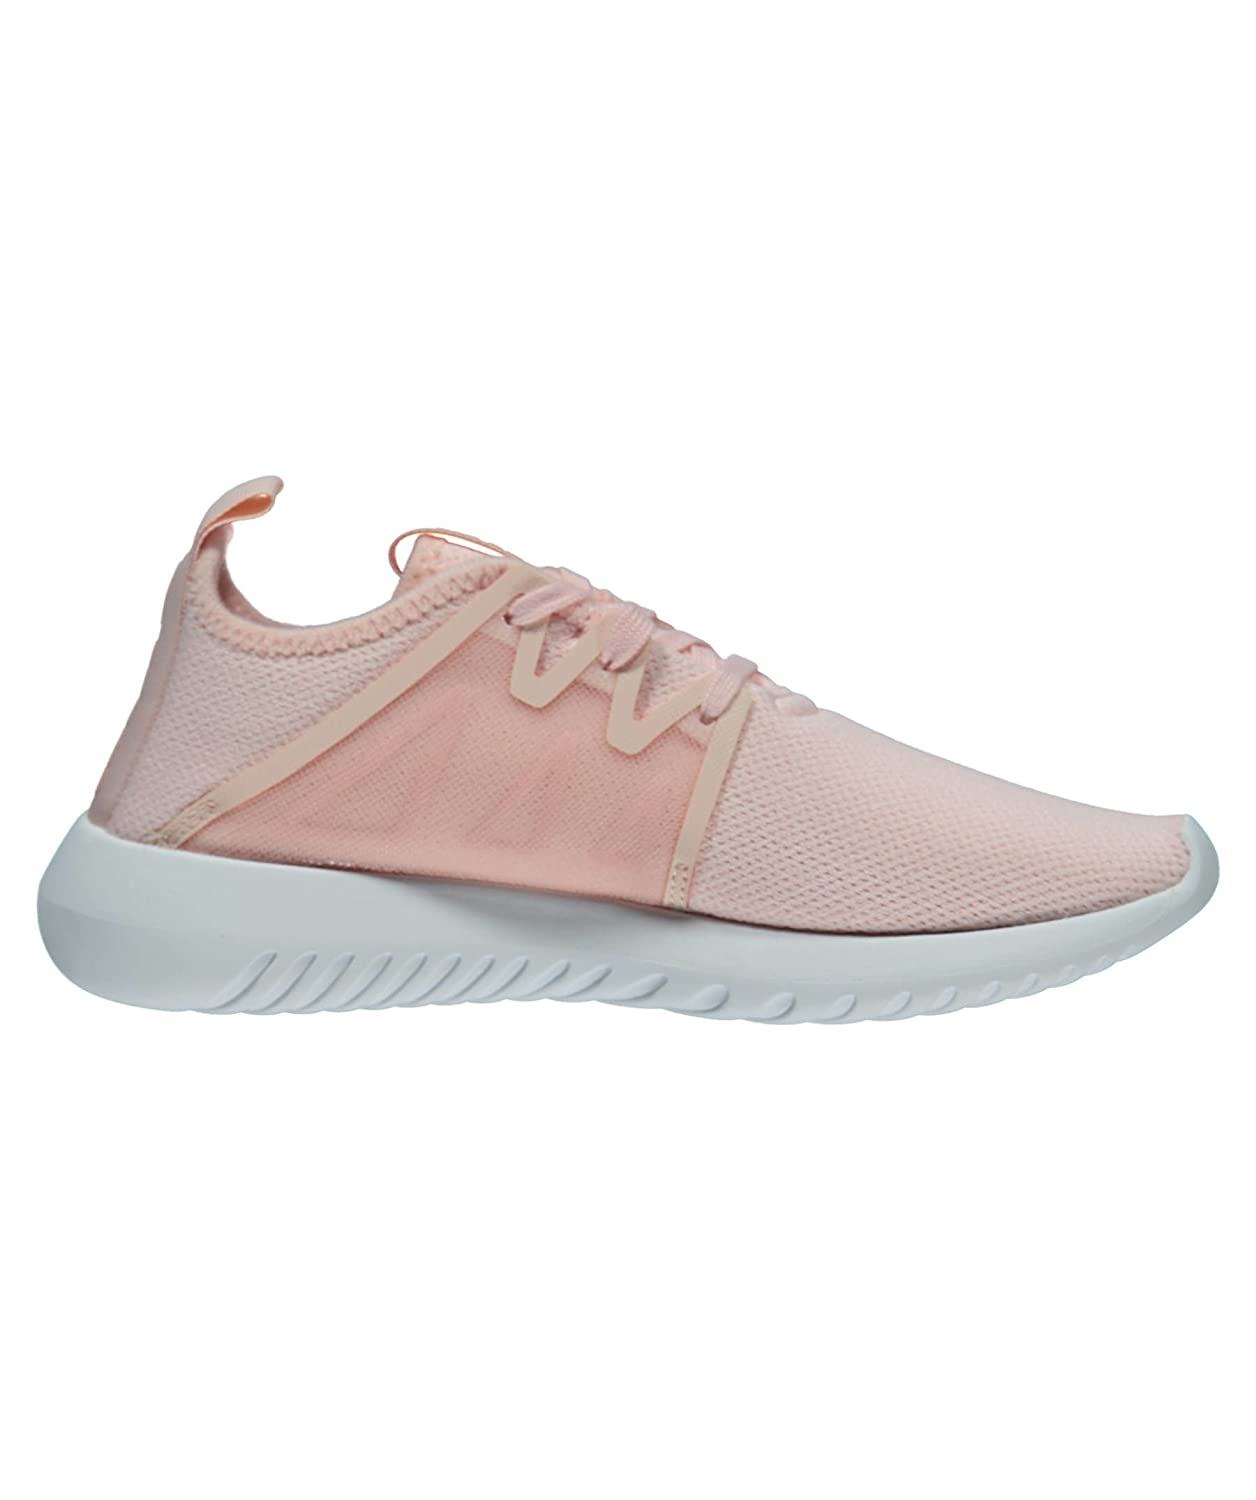 adidas Originals Womens Tubular Viral US5.5 Pink